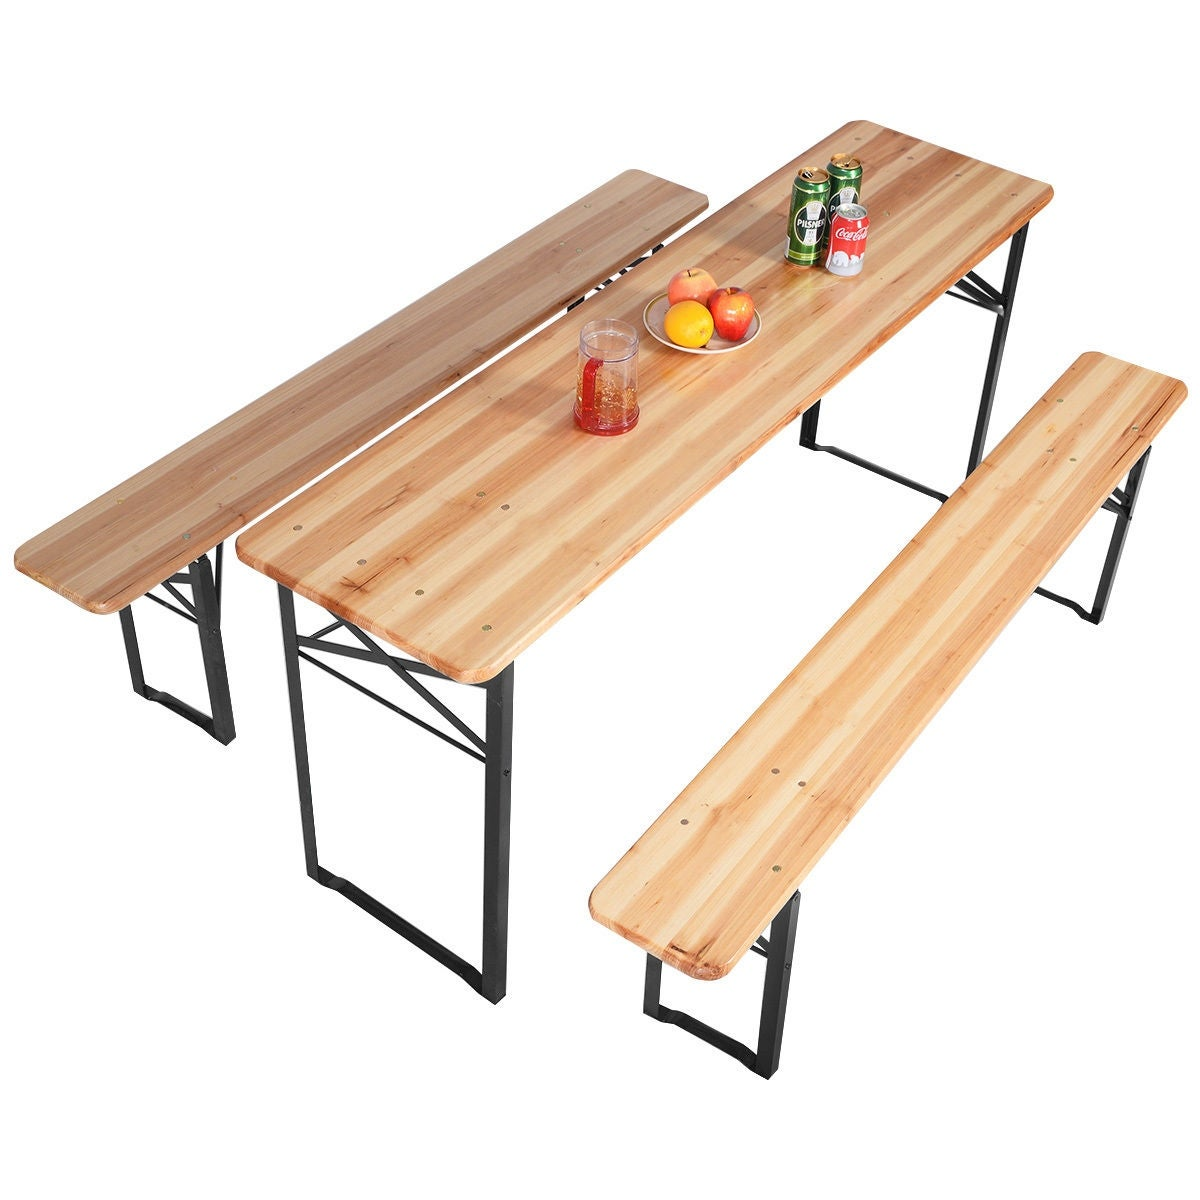 Shop Costway 3 PCS Beer Table Bench Set Folding Wooden Top Picnic Table  Patio Garden   Free Shipping Today   Overstock.com   15880944